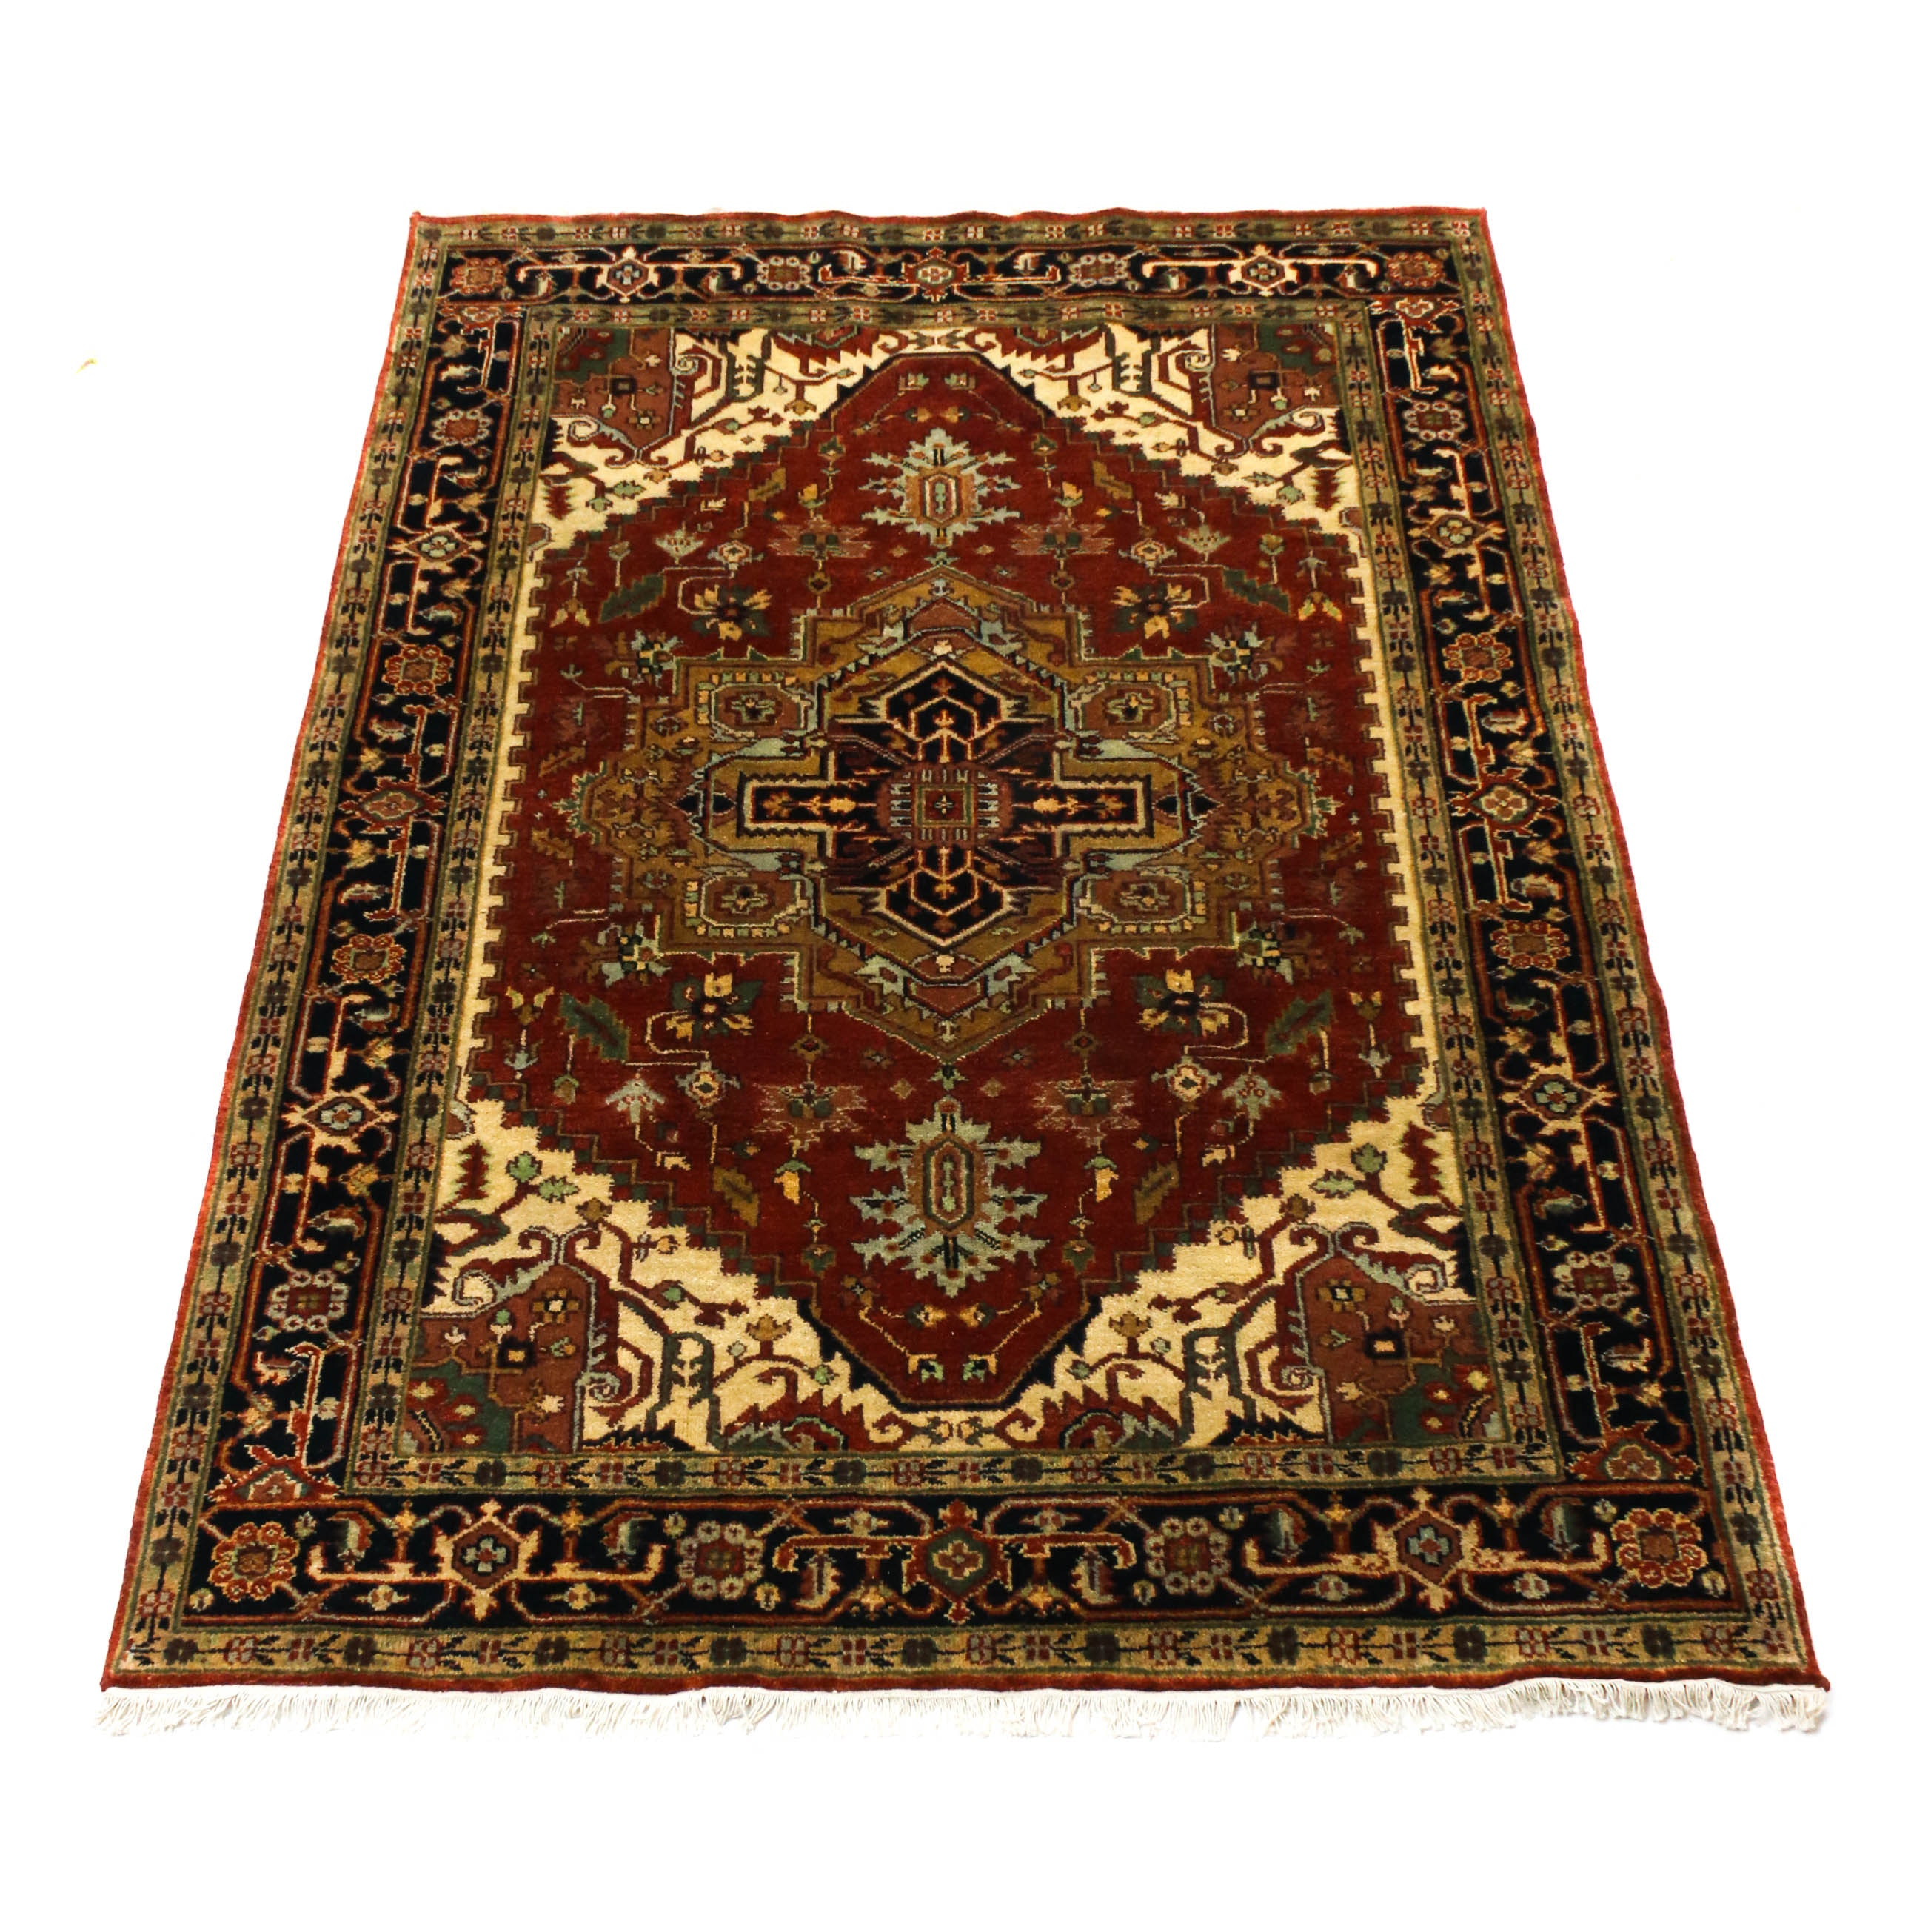 6'0 x 9'2 Hand-Knotted Indo-Persian Heriz Serapi Wool Rug